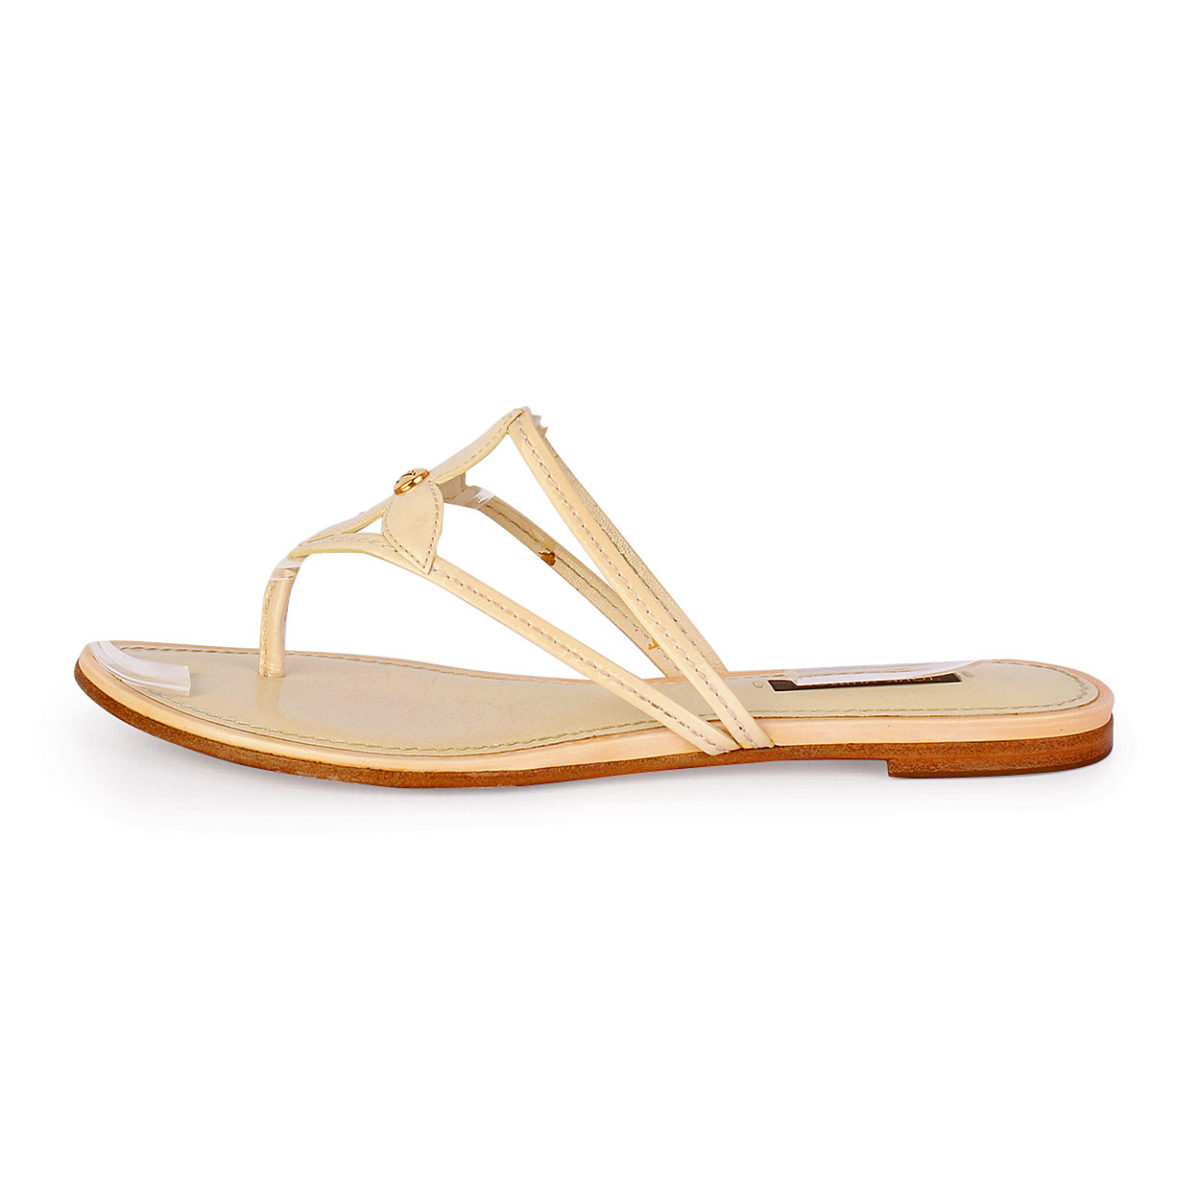 9b340a7b1 LOUIS VUITTON Patent Flower Thong Sandals Cream - S  36.5 (3.5-4 ...